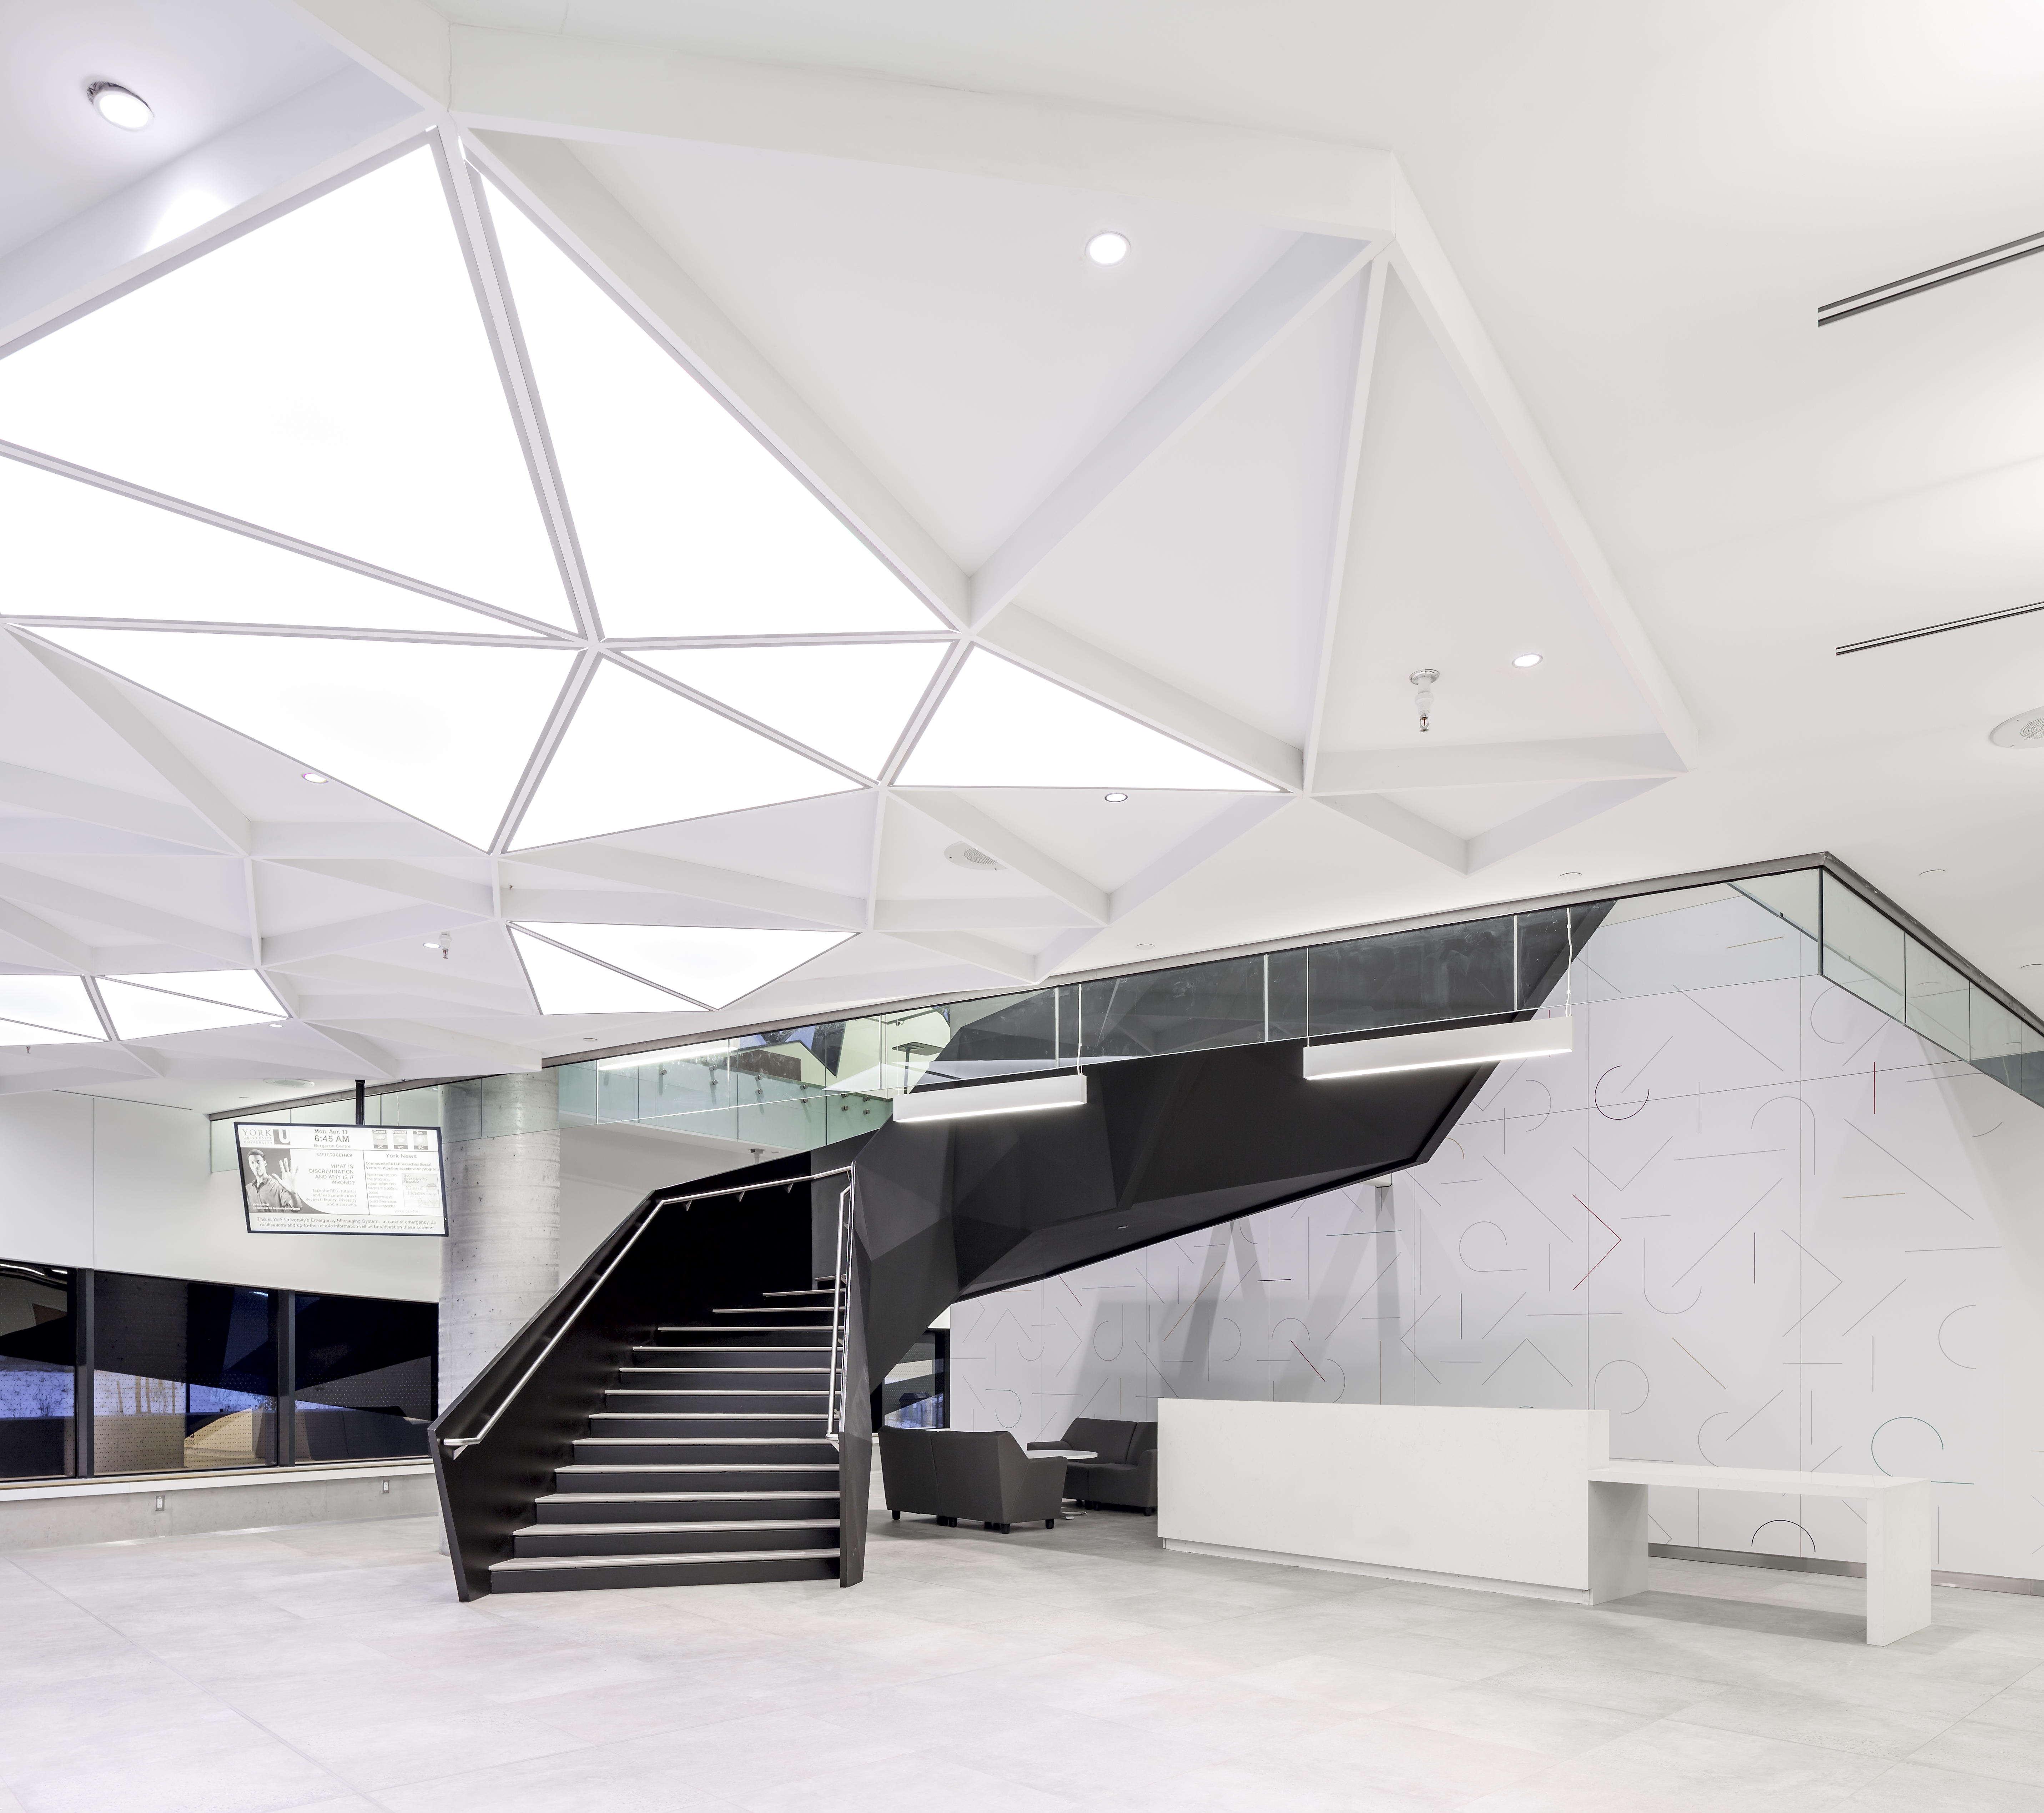 """The dynamic triangle motif carries through the building like a brand icon, visible here in the main lobby's fluorescent """"skylights"""" and U-shaped staircase constructed from welded triangular slabs of steel. Photography by Doublespace Photography"""